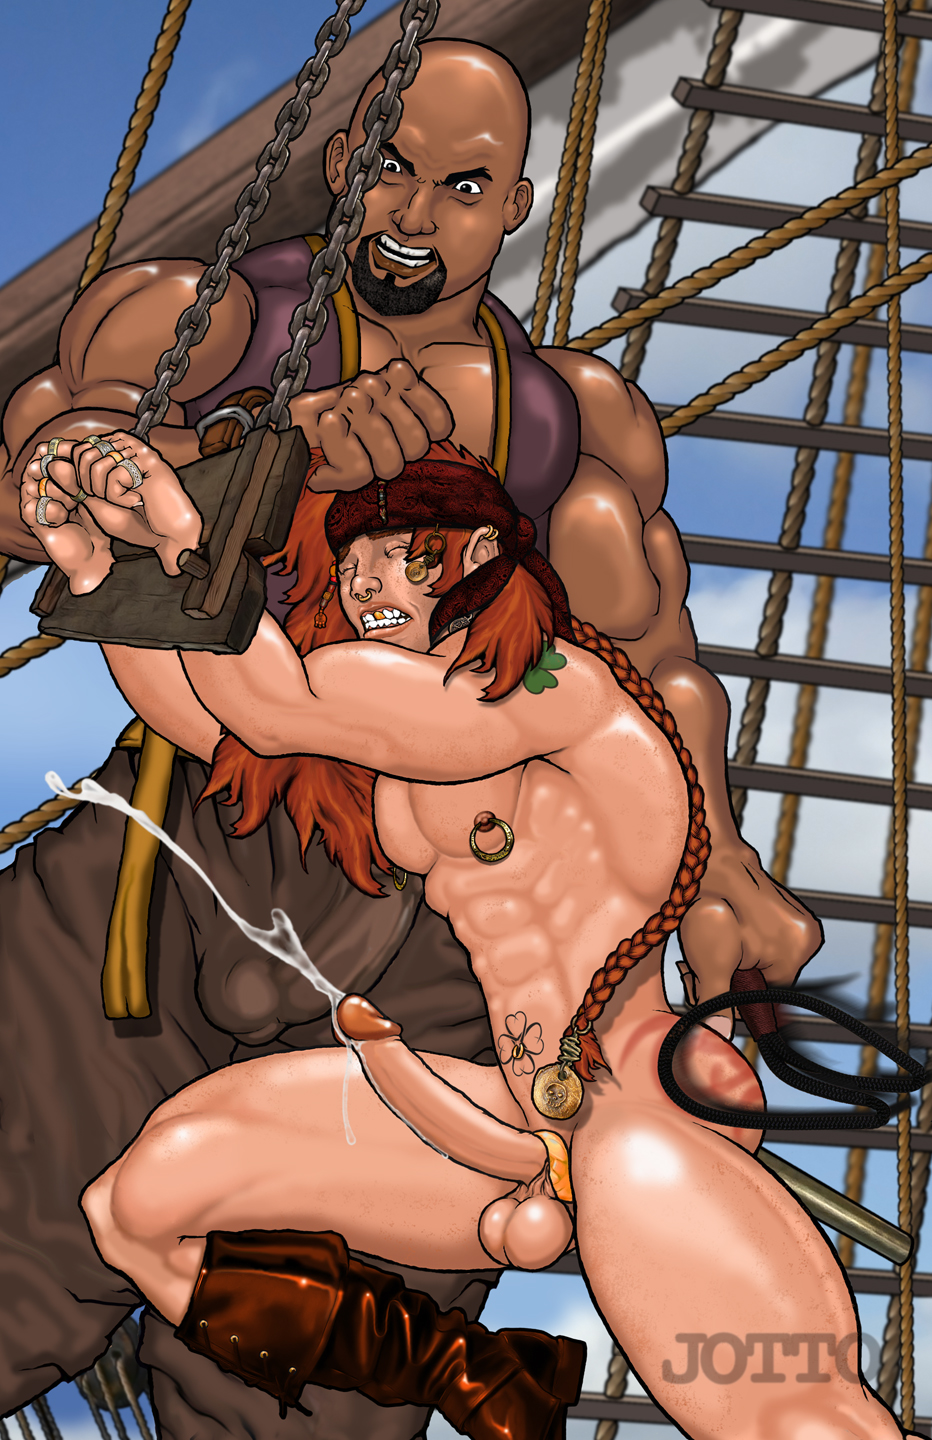 Nude pirate cartoons porncraft gallery